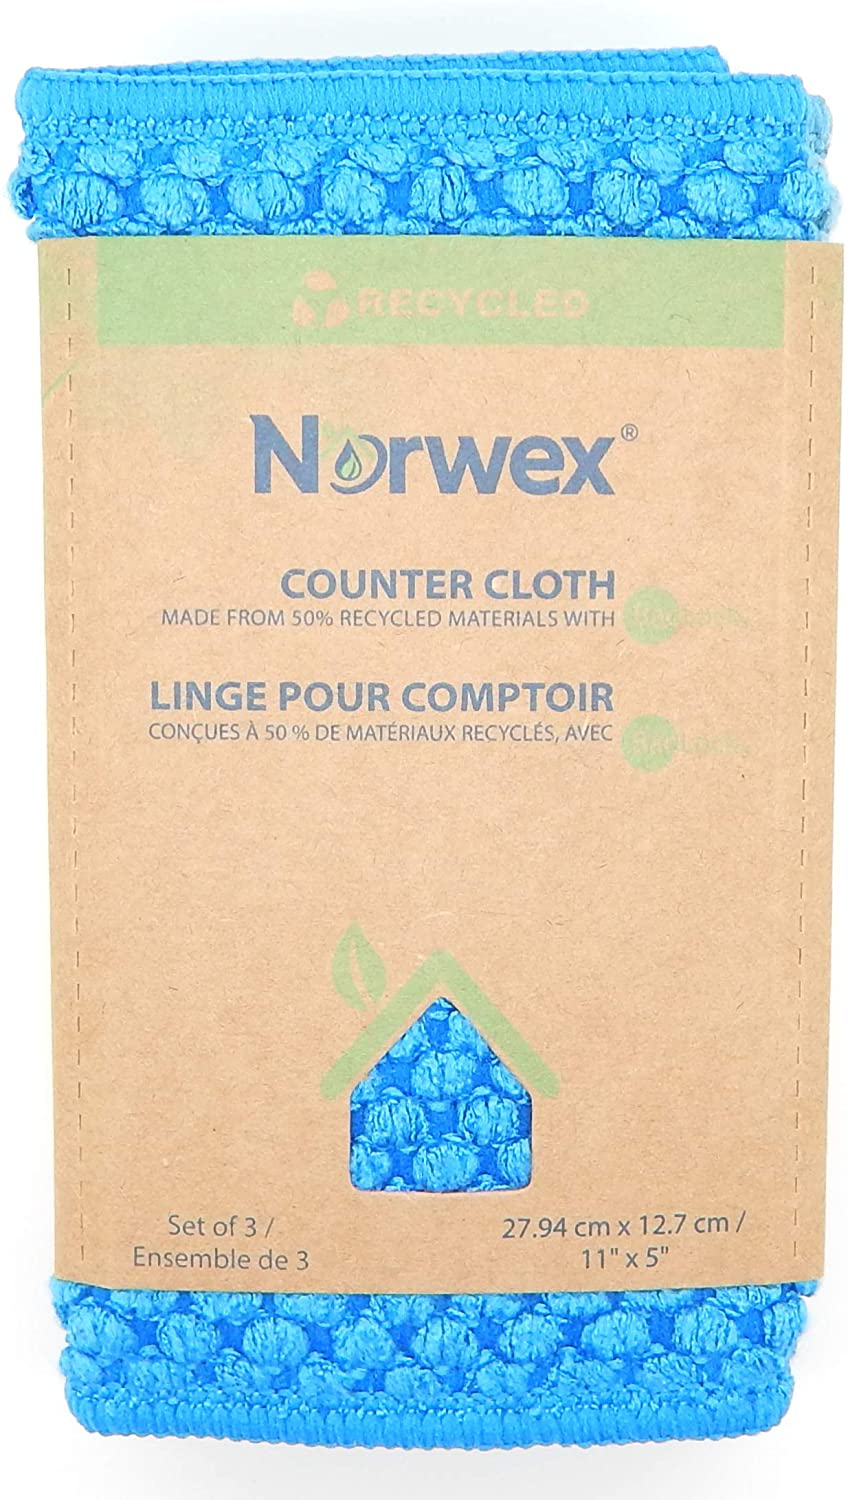 norwex reviews consumer reports